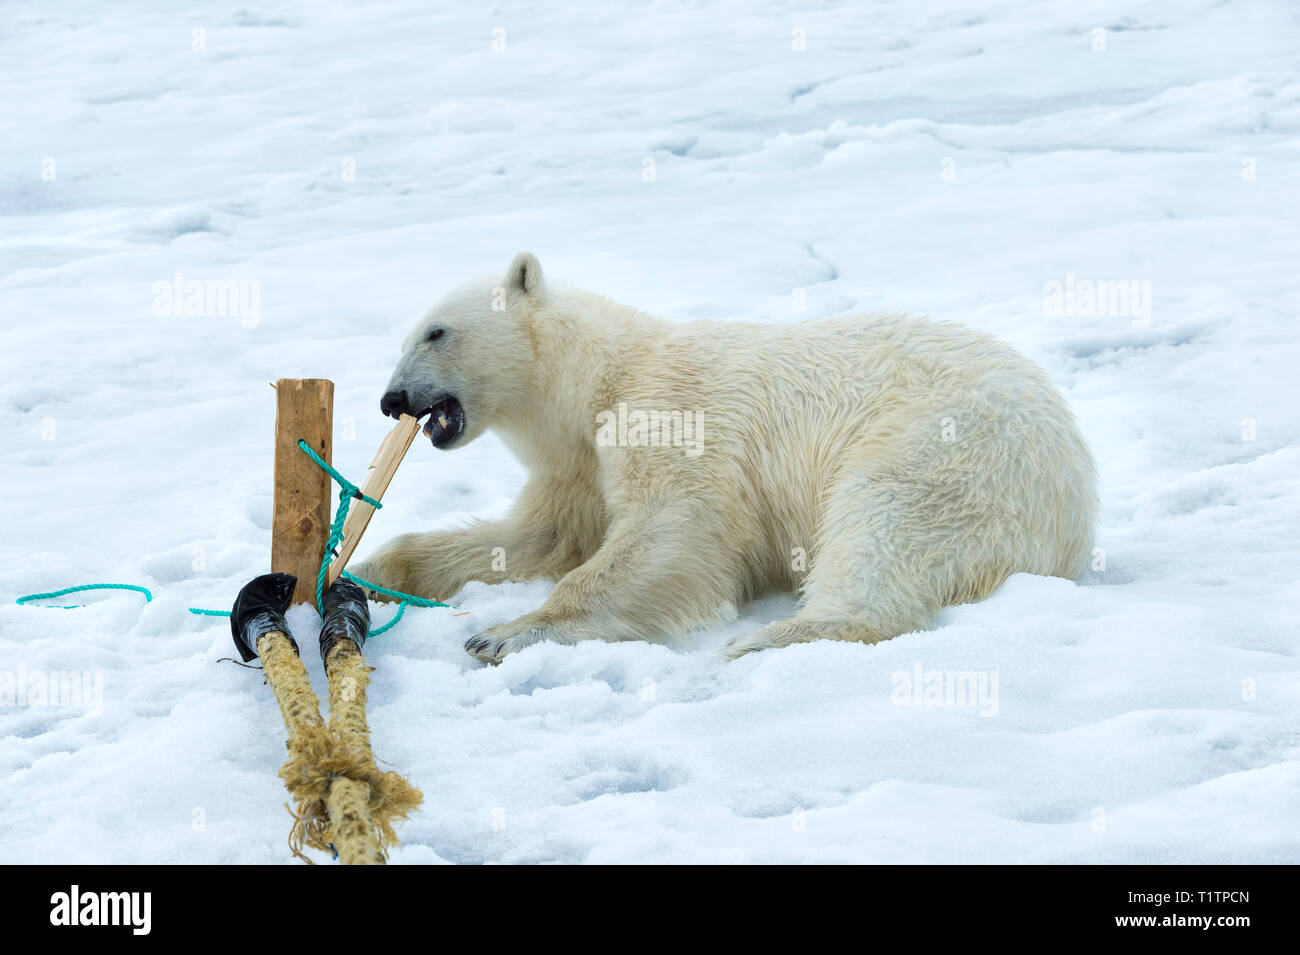 Polar Bear (Ursus maritimus) inspecting and chewing on pole of expedition ship, Svalbard Archipelago, Norway - Stock Image